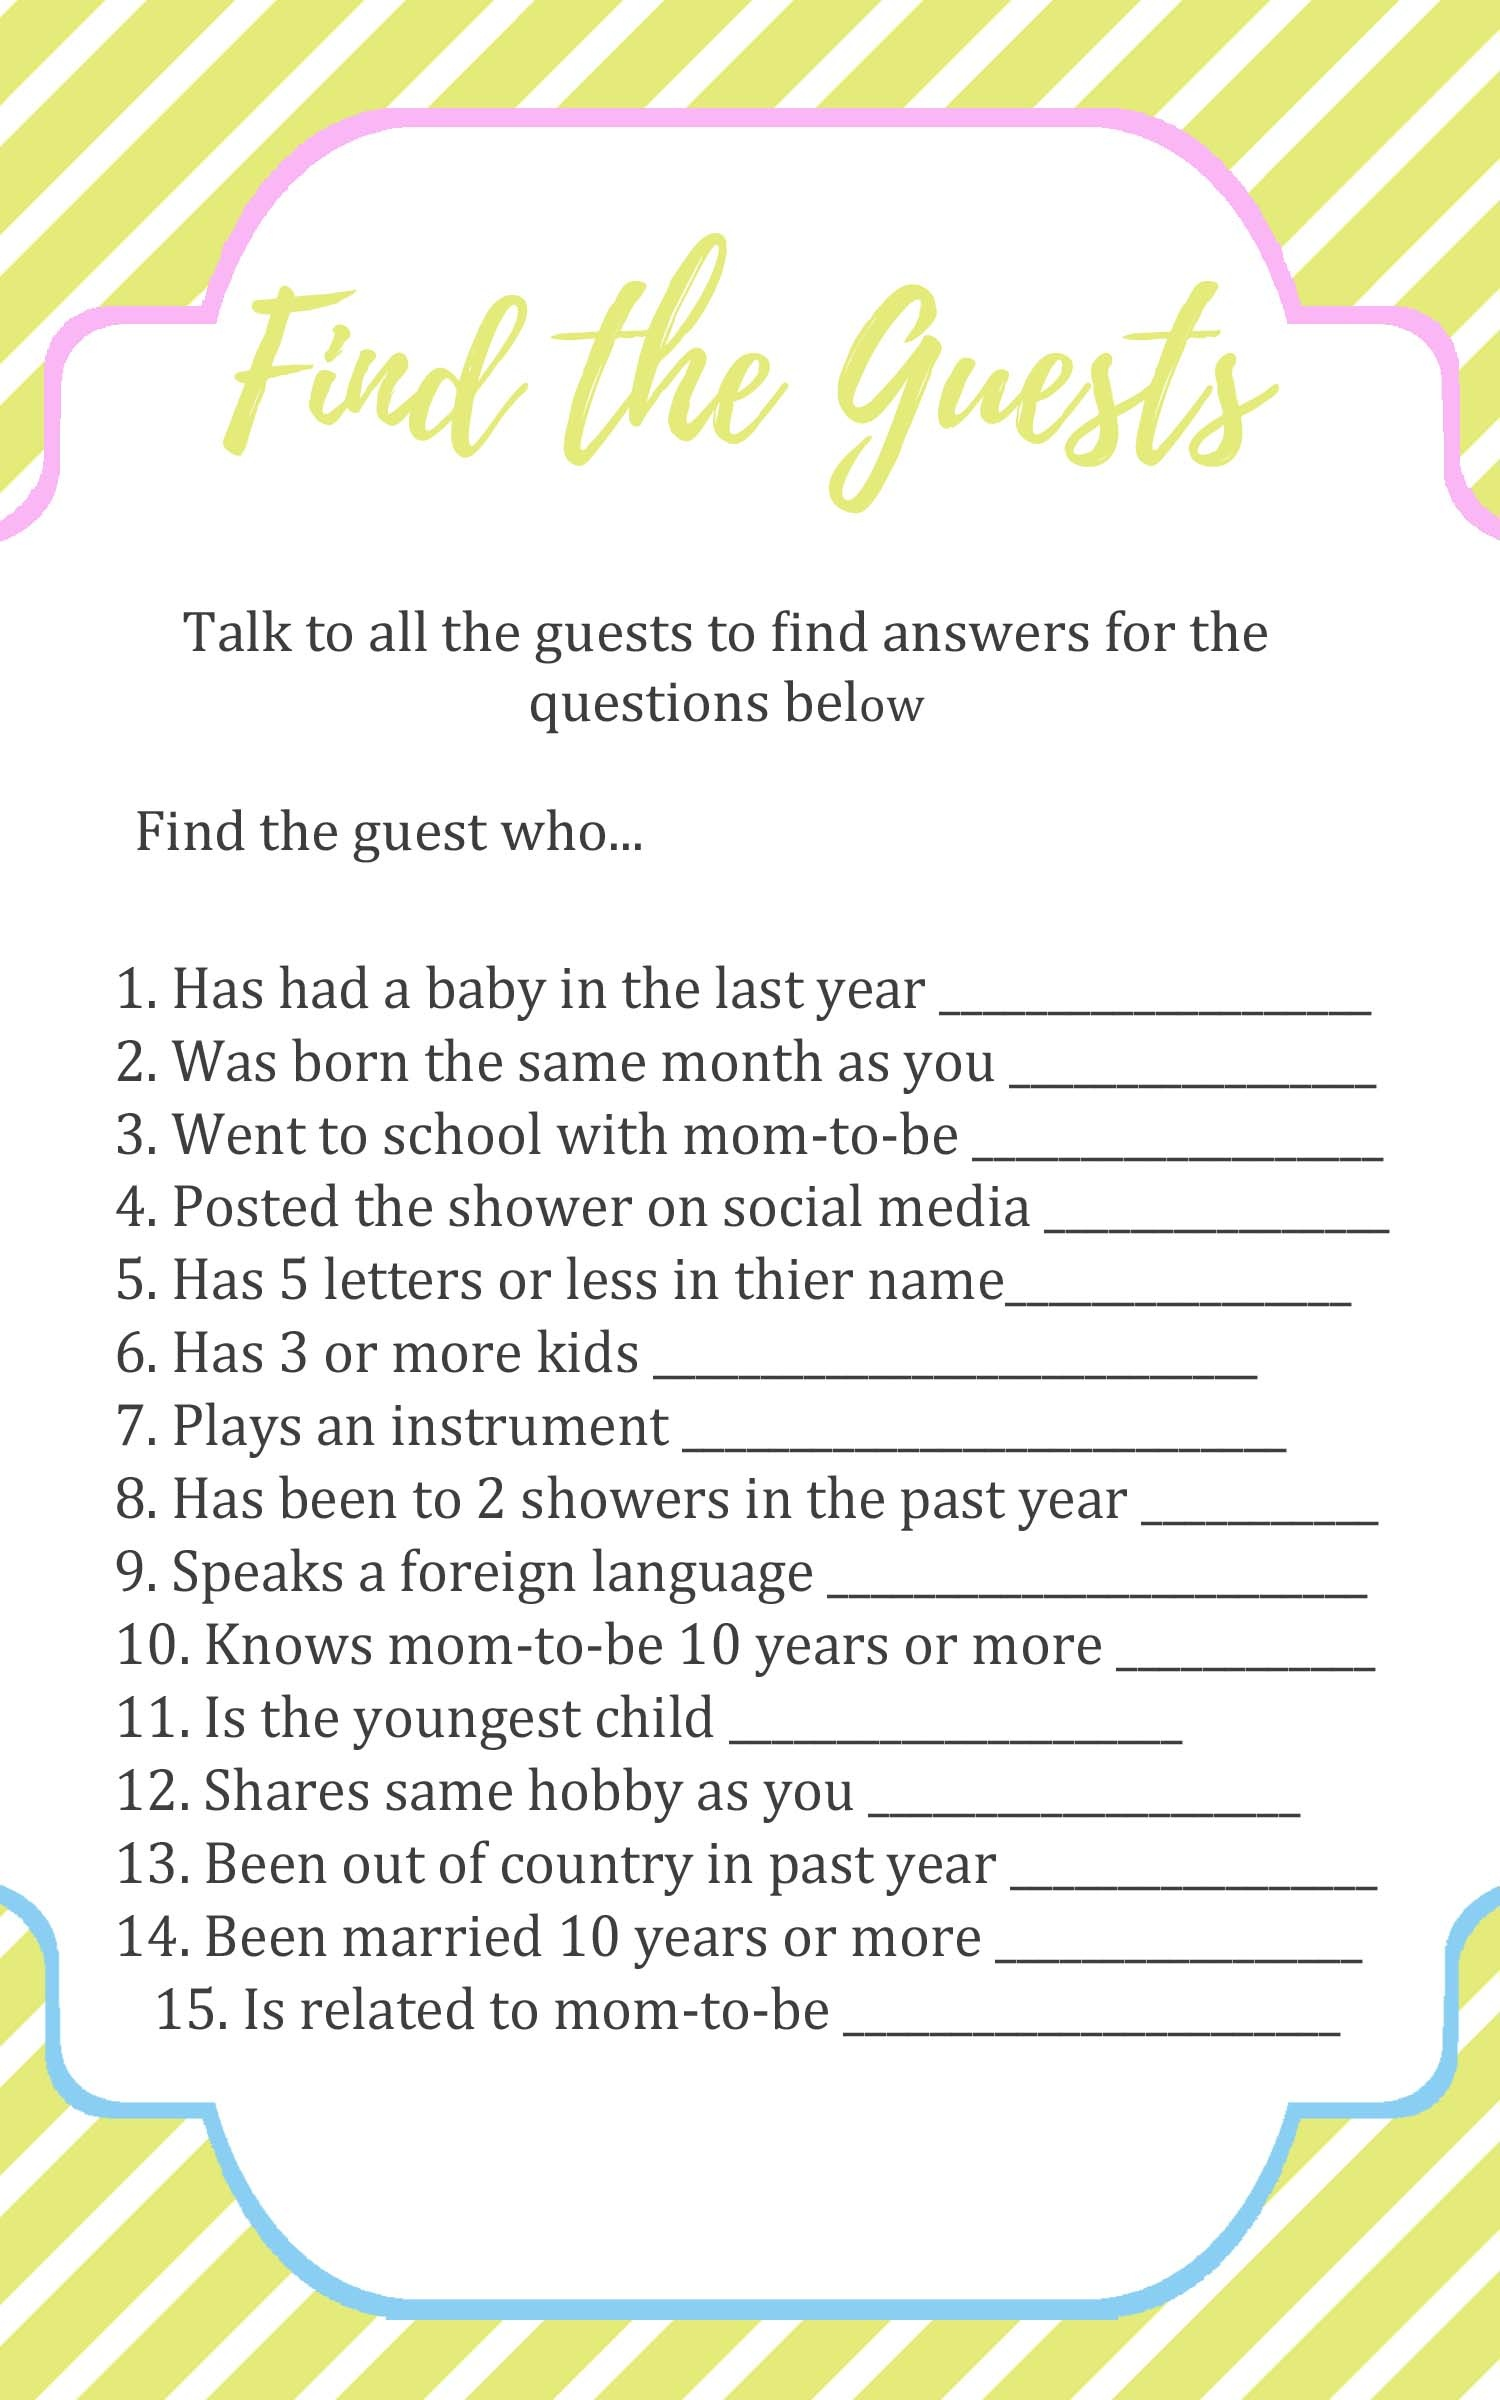 Baby Shower Ice Breaker Games - Find The Guest Game Free Printable